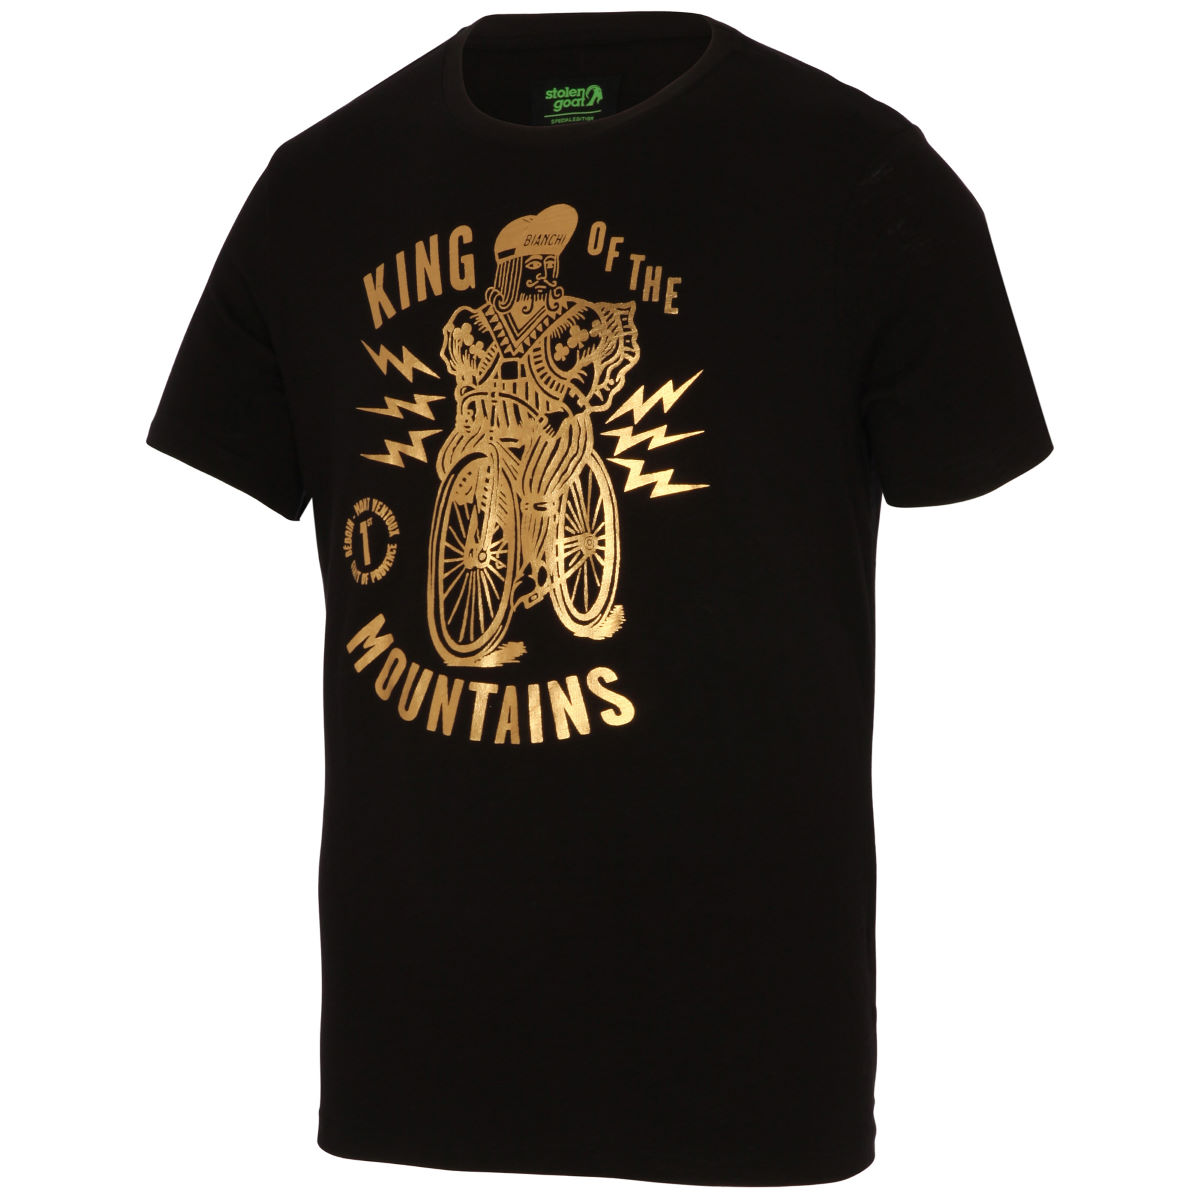 T-shirt Stolen Goat King of the Mountains - S Noir T-shirts